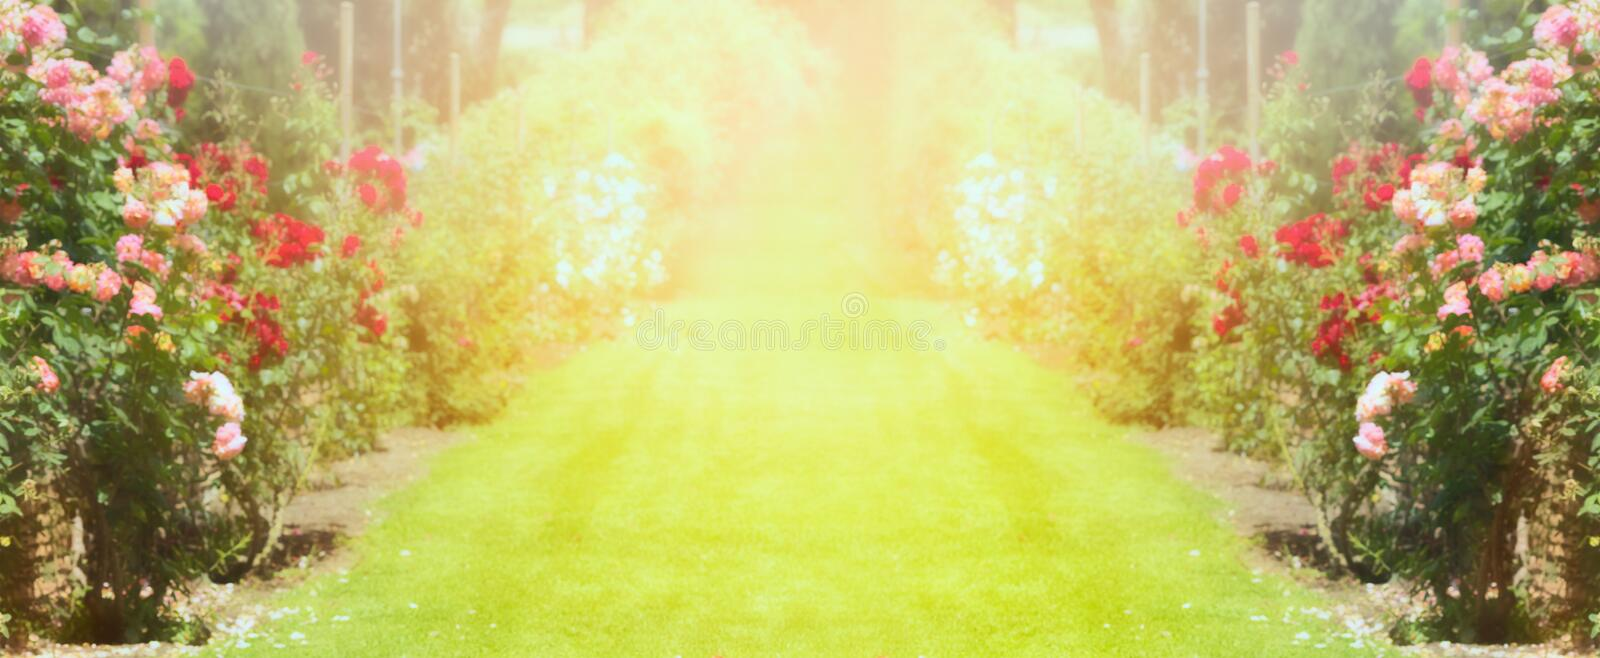 Roses garden with lawn and sunlight, blurred nature background, banner royalty free stock images